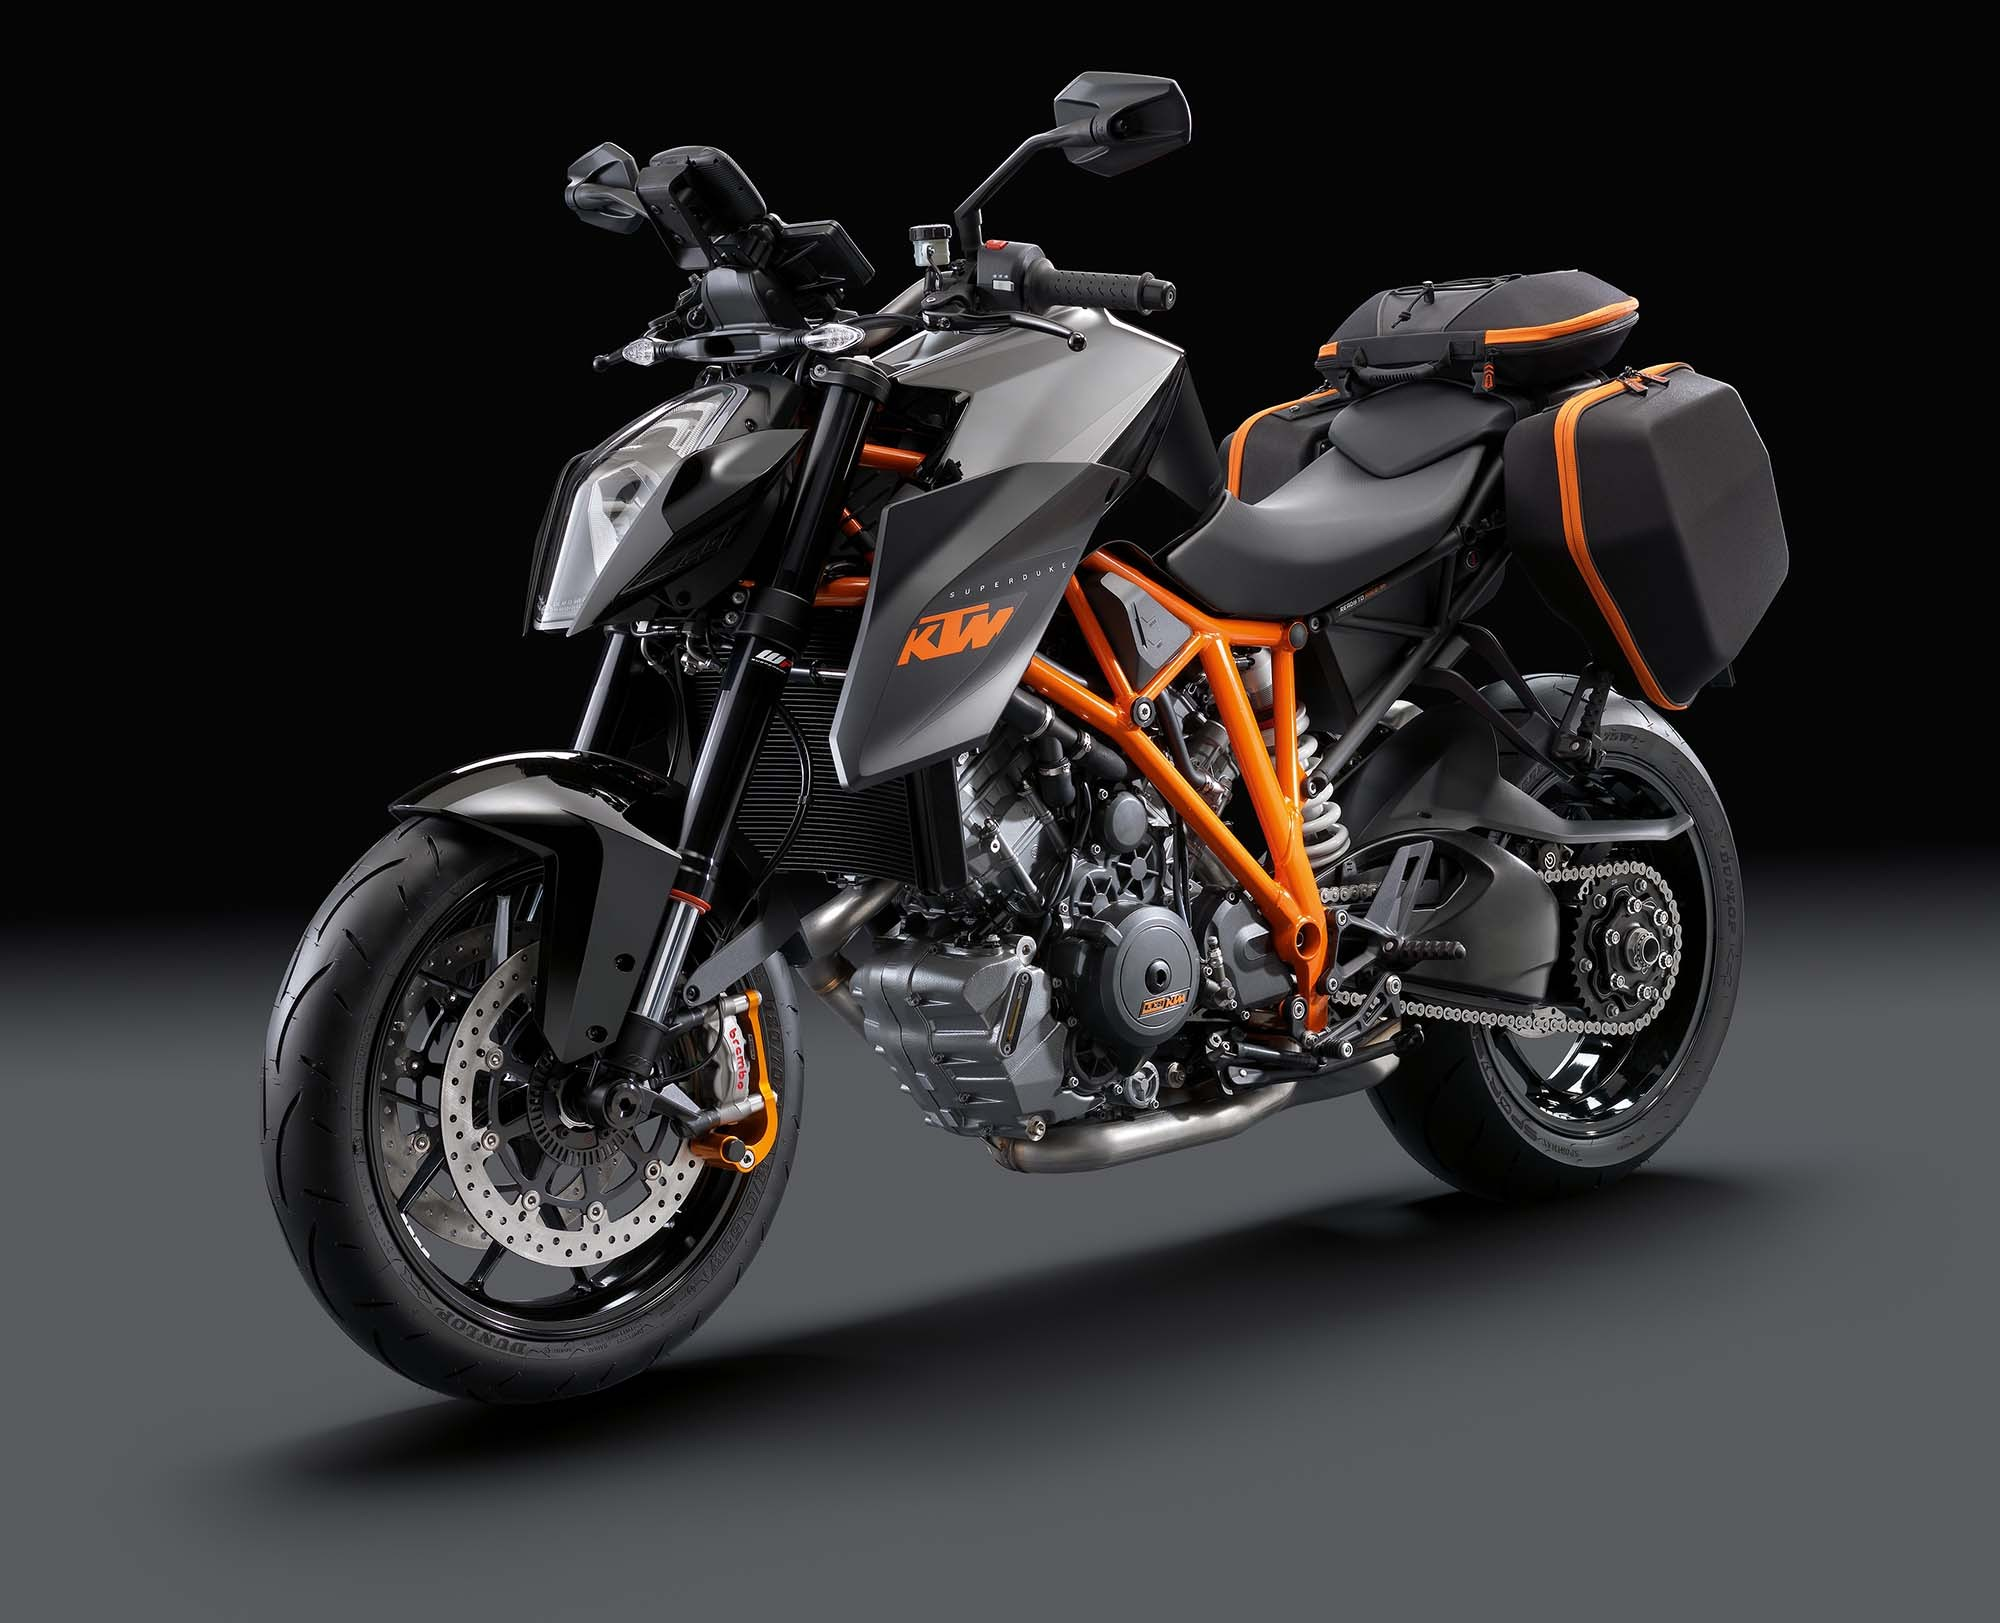 ktm 1290 super duke r abs 2014 unleash the beast india on roads. Black Bedroom Furniture Sets. Home Design Ideas